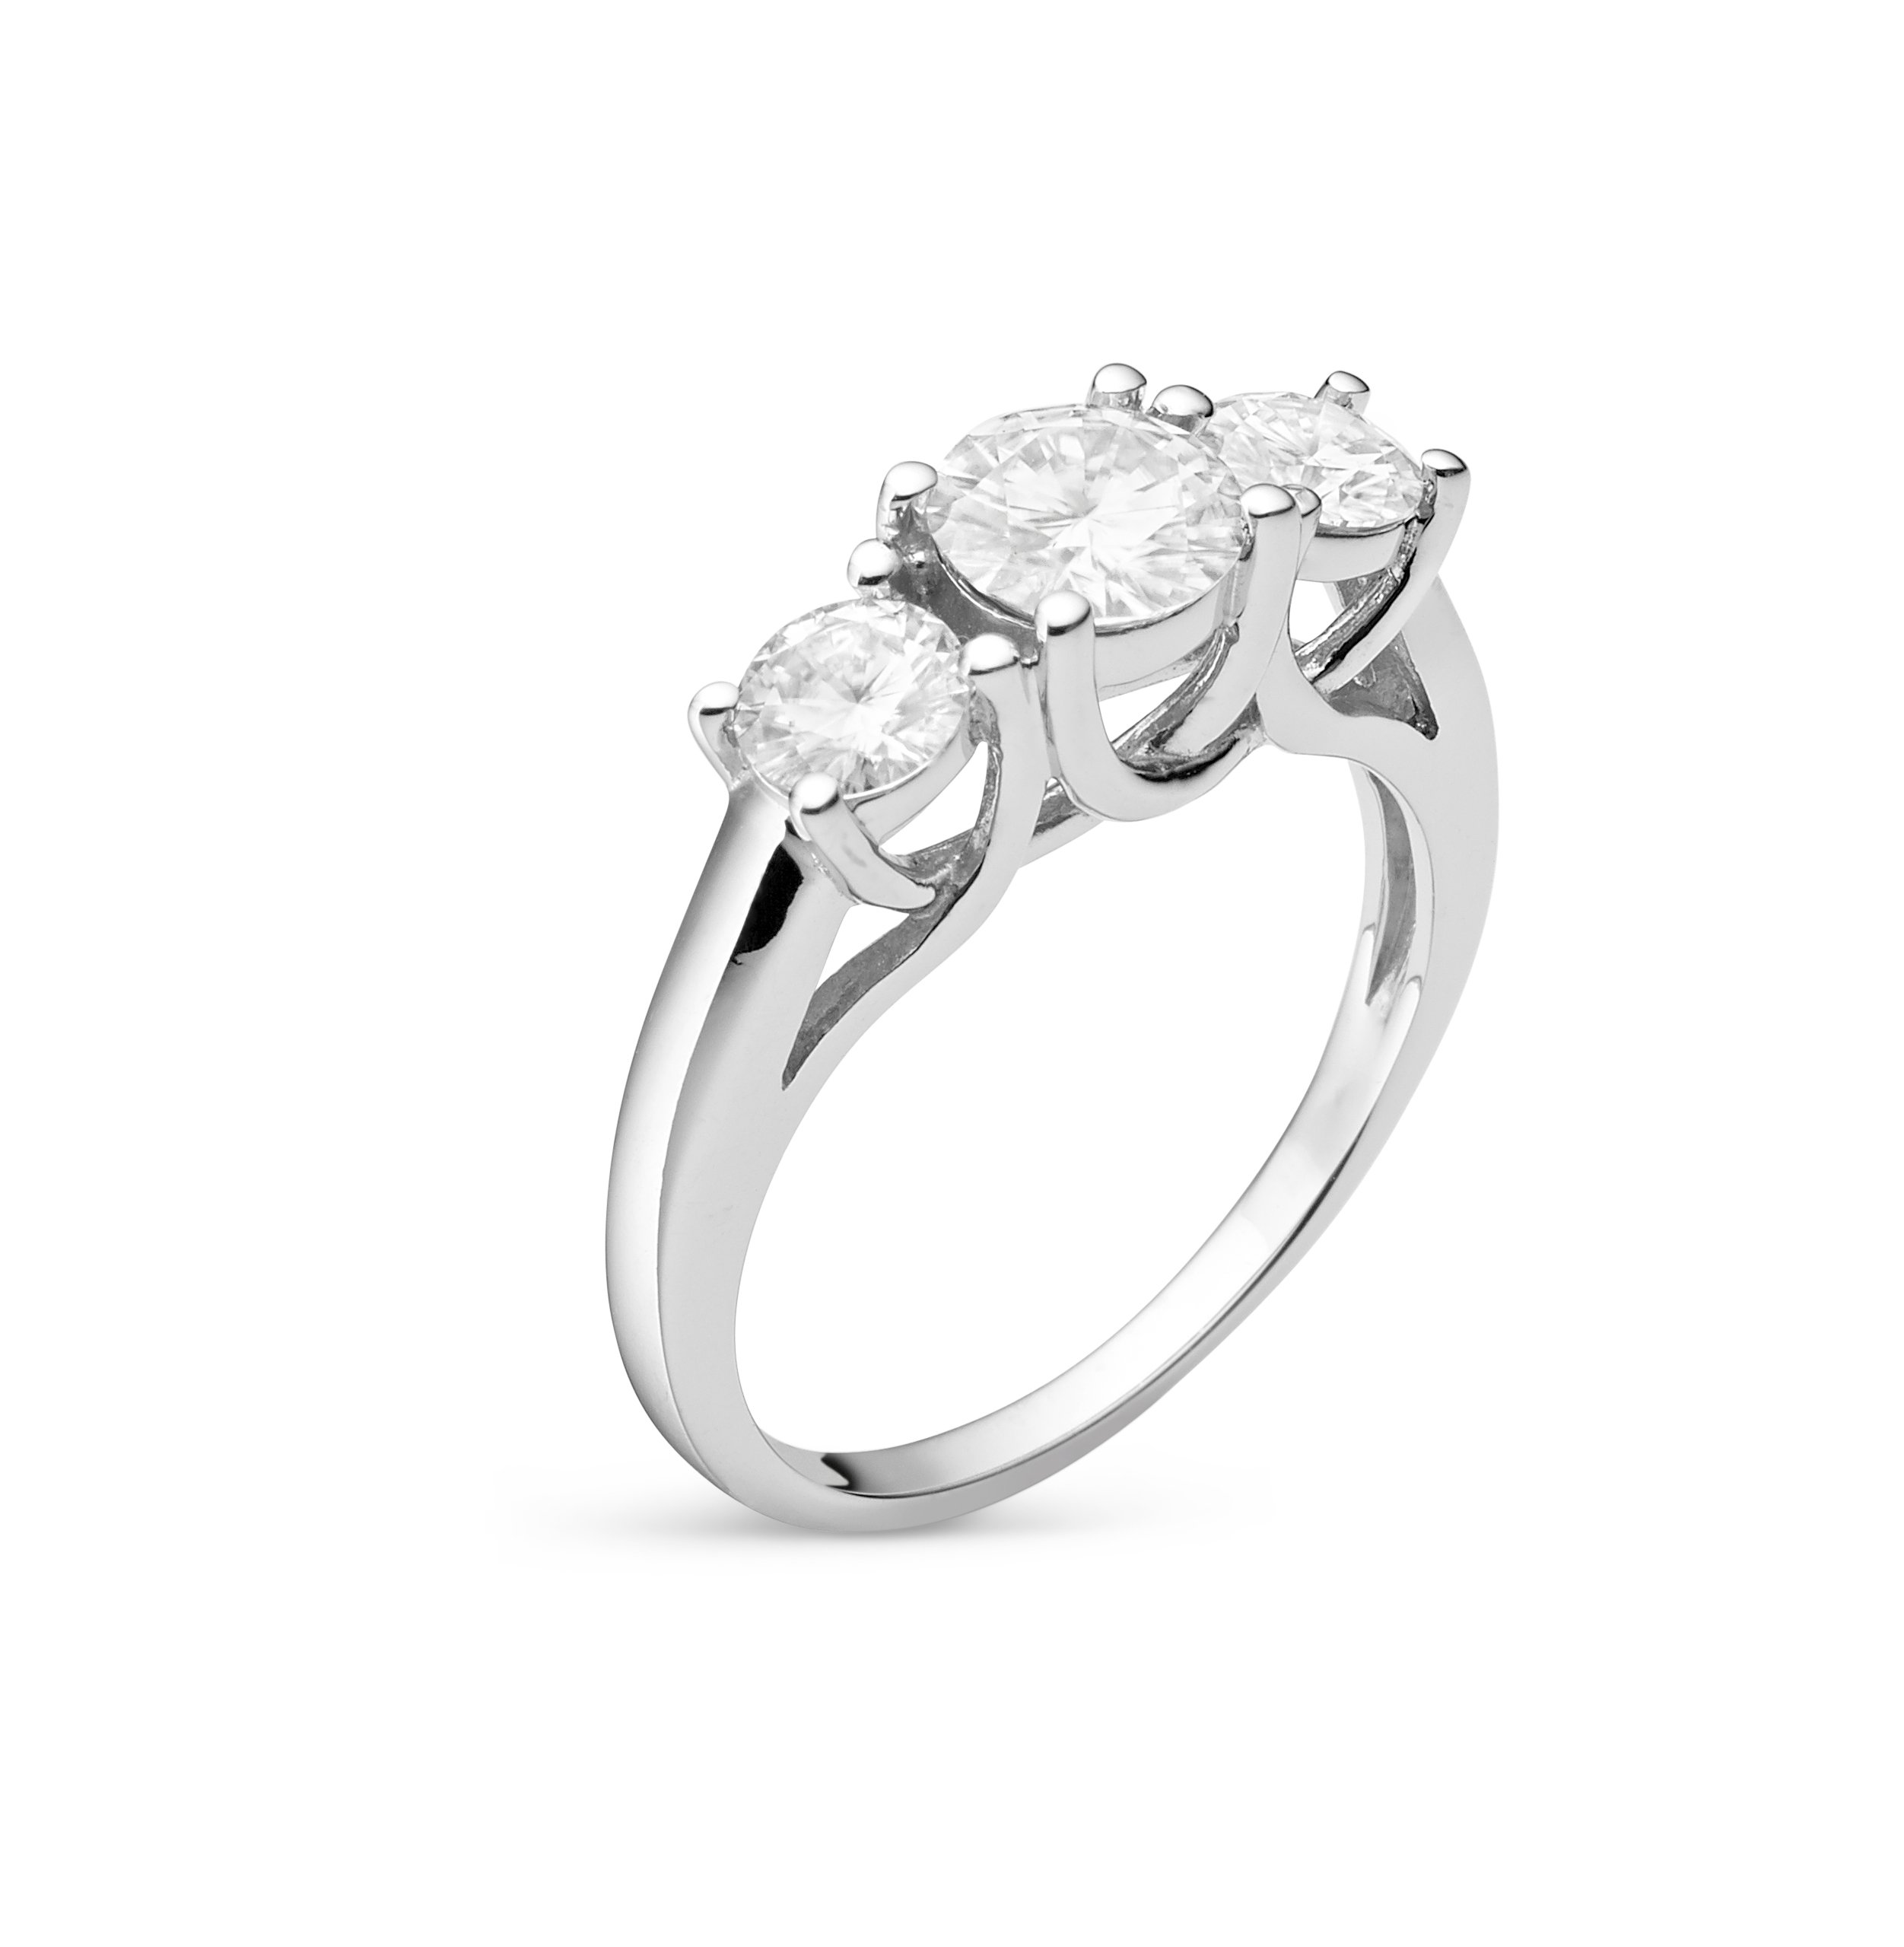 Forever Classic Round Cut 6.0mm Moissanite Engagement Ring-size 6, 1.12cttw DEW By Charles & Colvard